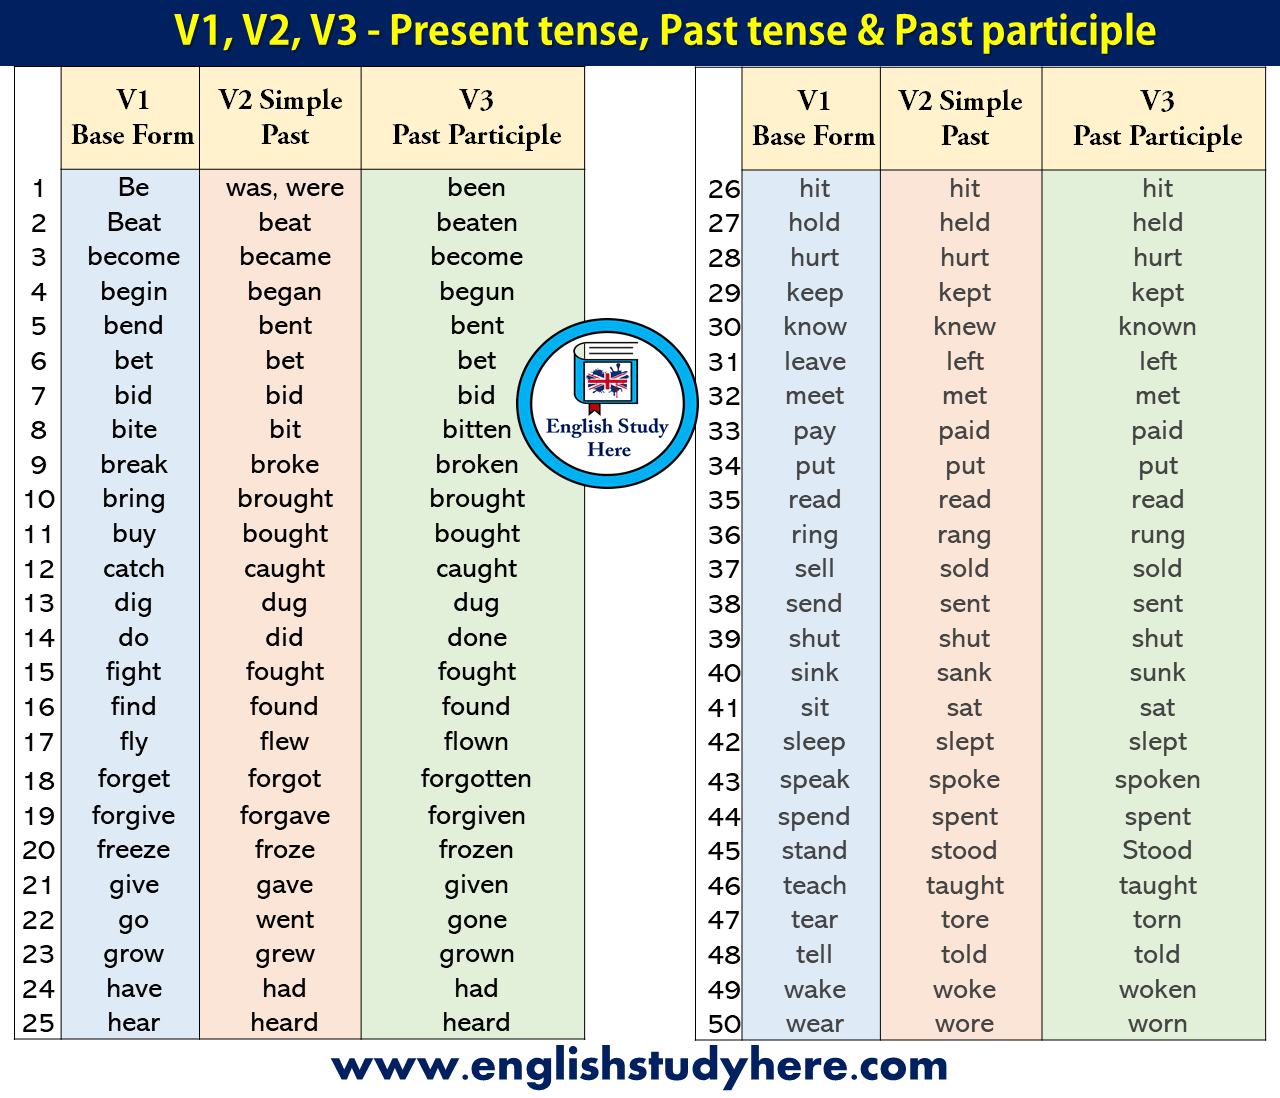 50 examples of present tense past tense and past participle